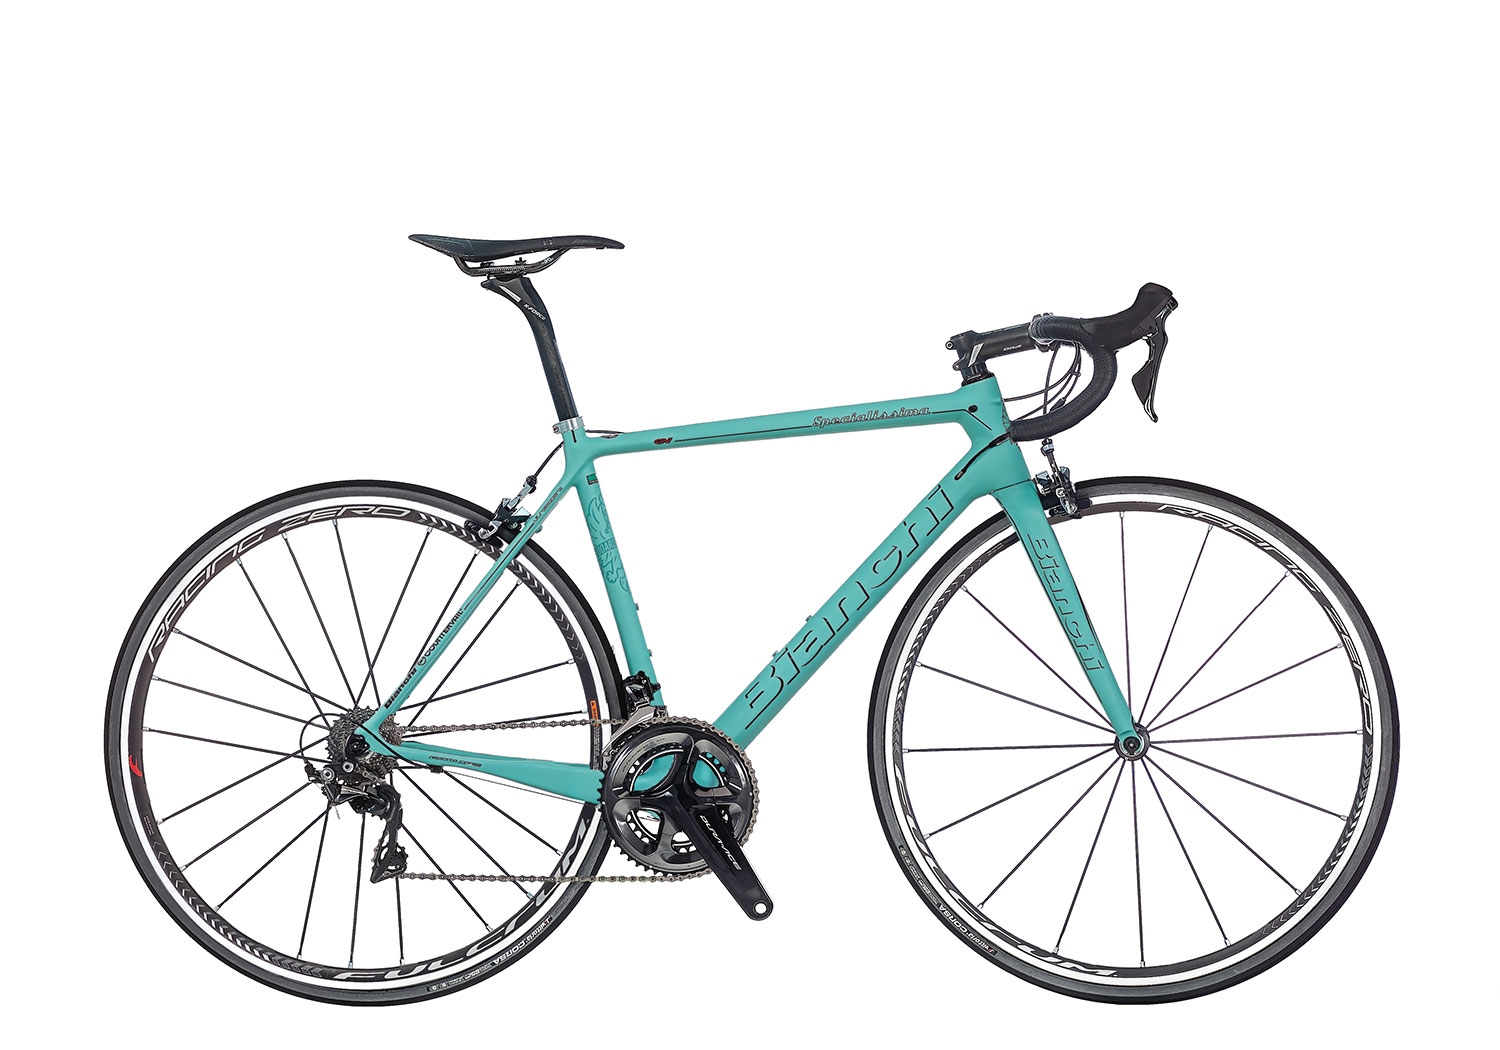 Bianchi Specialissima Dura Ace (2017)